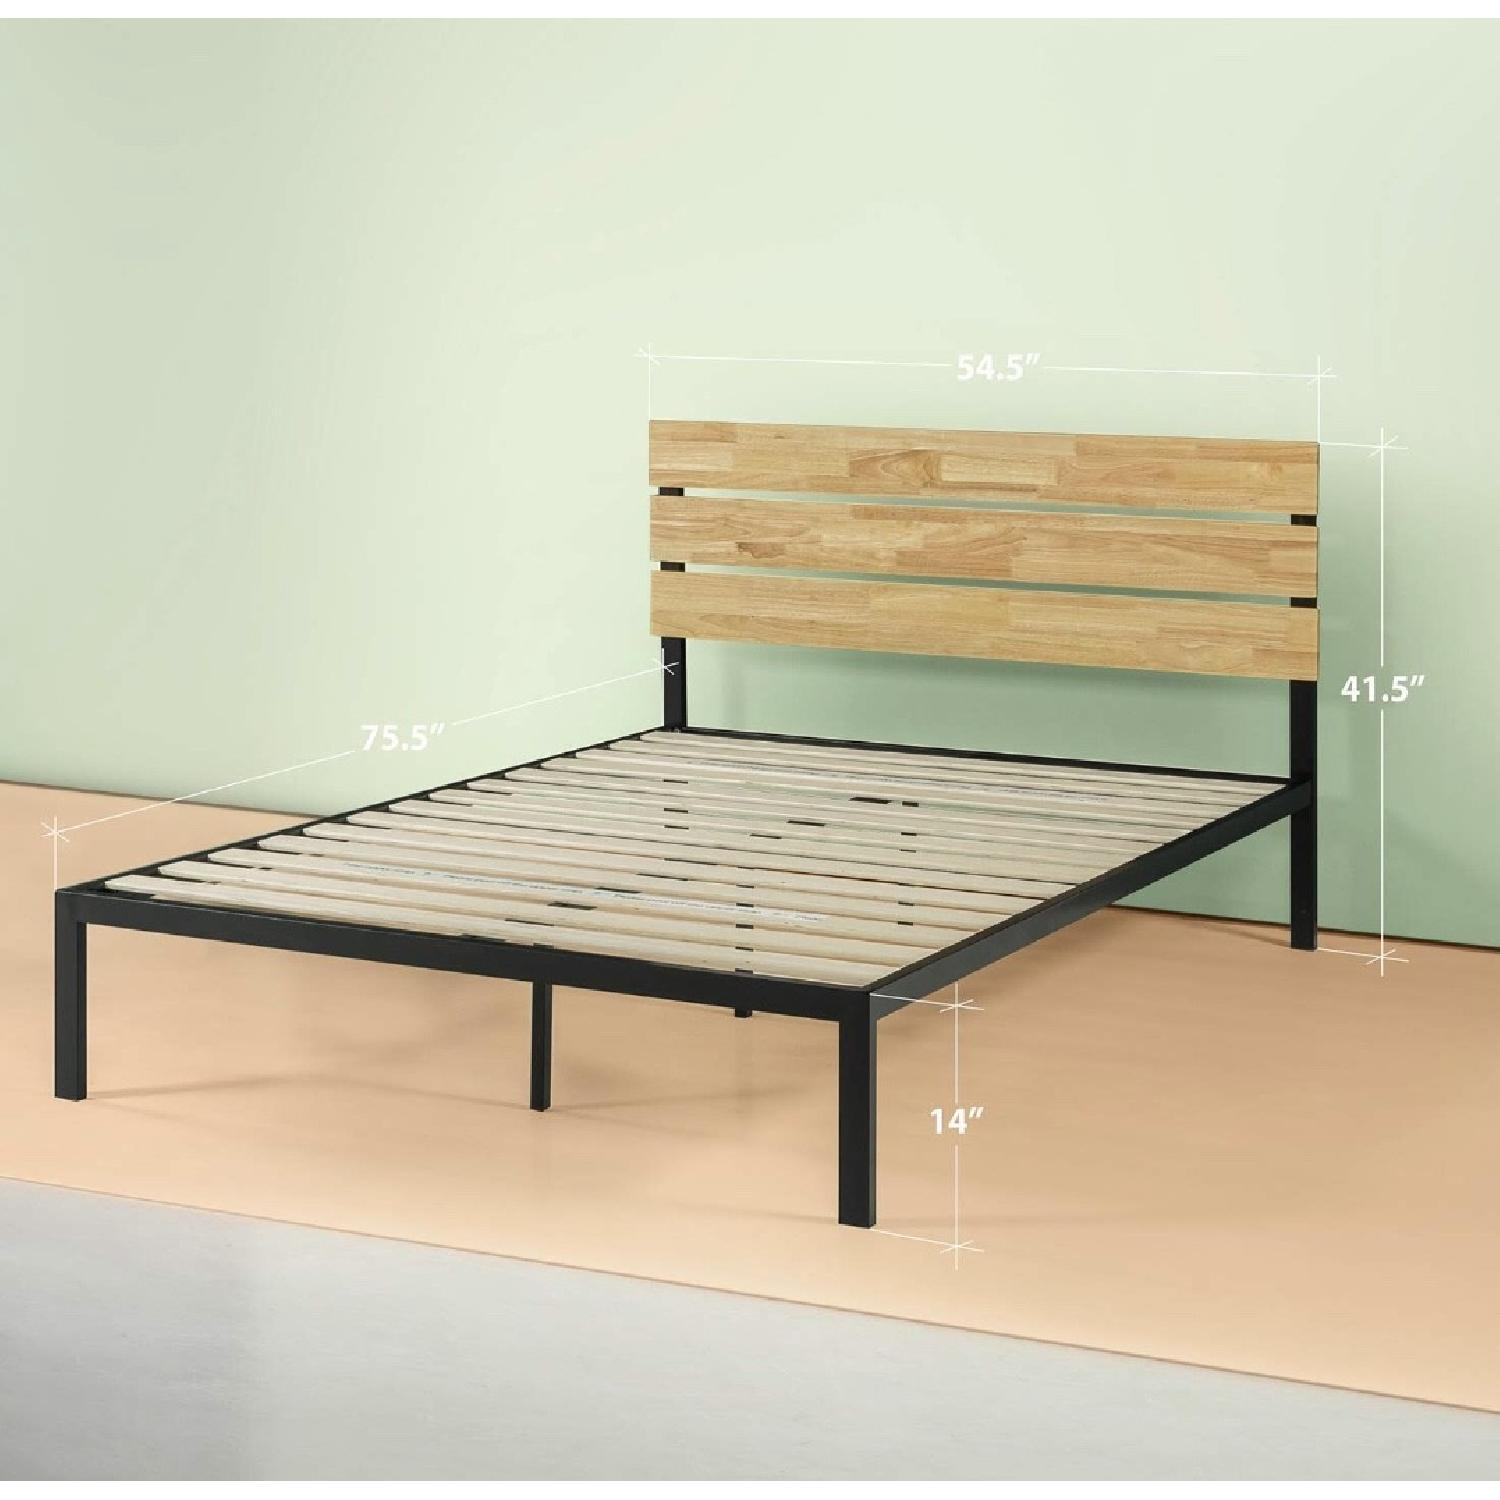 Zinus Paul Full Metal & Wood Platform Bed w/ Wood Slats